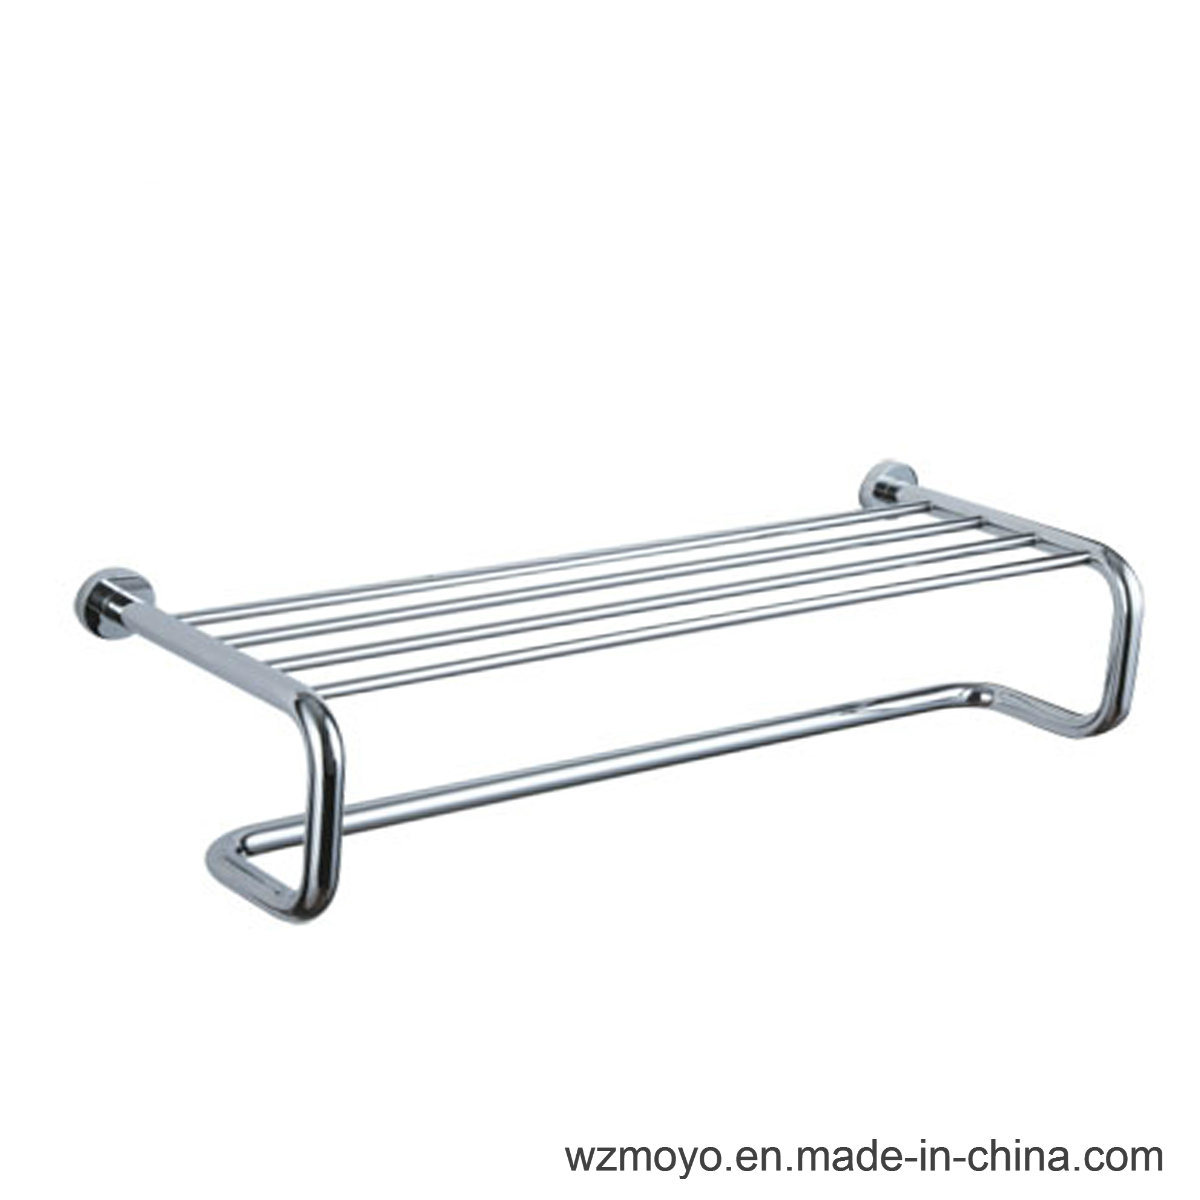 Brass Towel Rack for The Bathroom